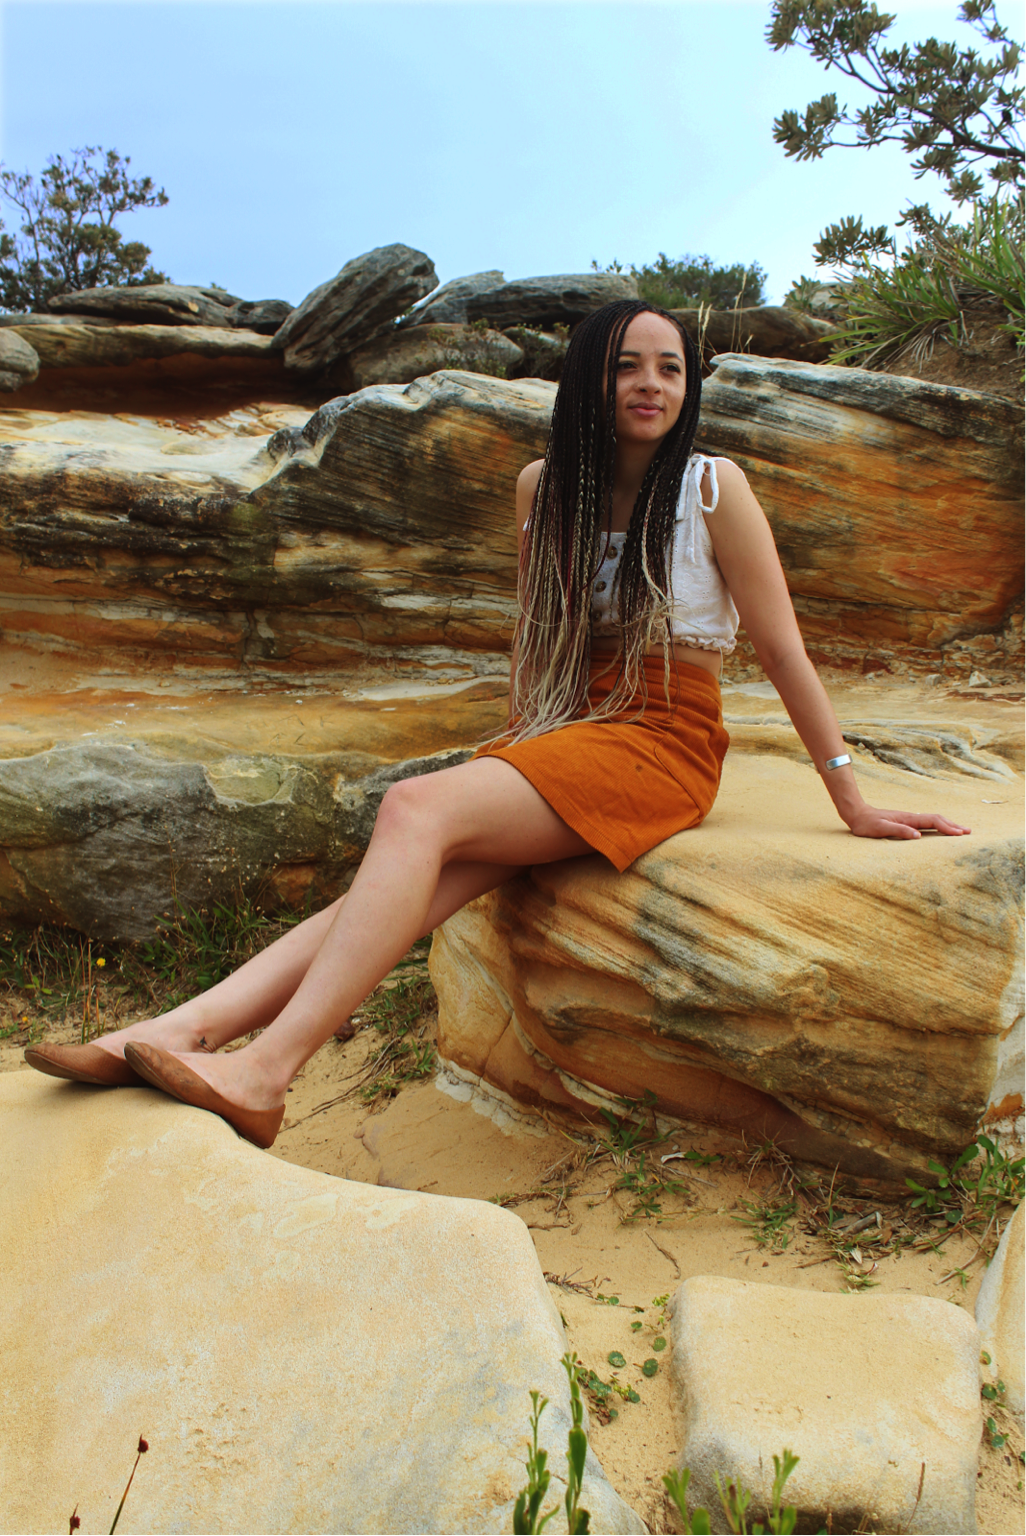 [image description: Ria is sitting on a sandstone rock, her legs are stretched out and placed on a rock in front of her. She is looking out to the distance with a relaxed expression.]